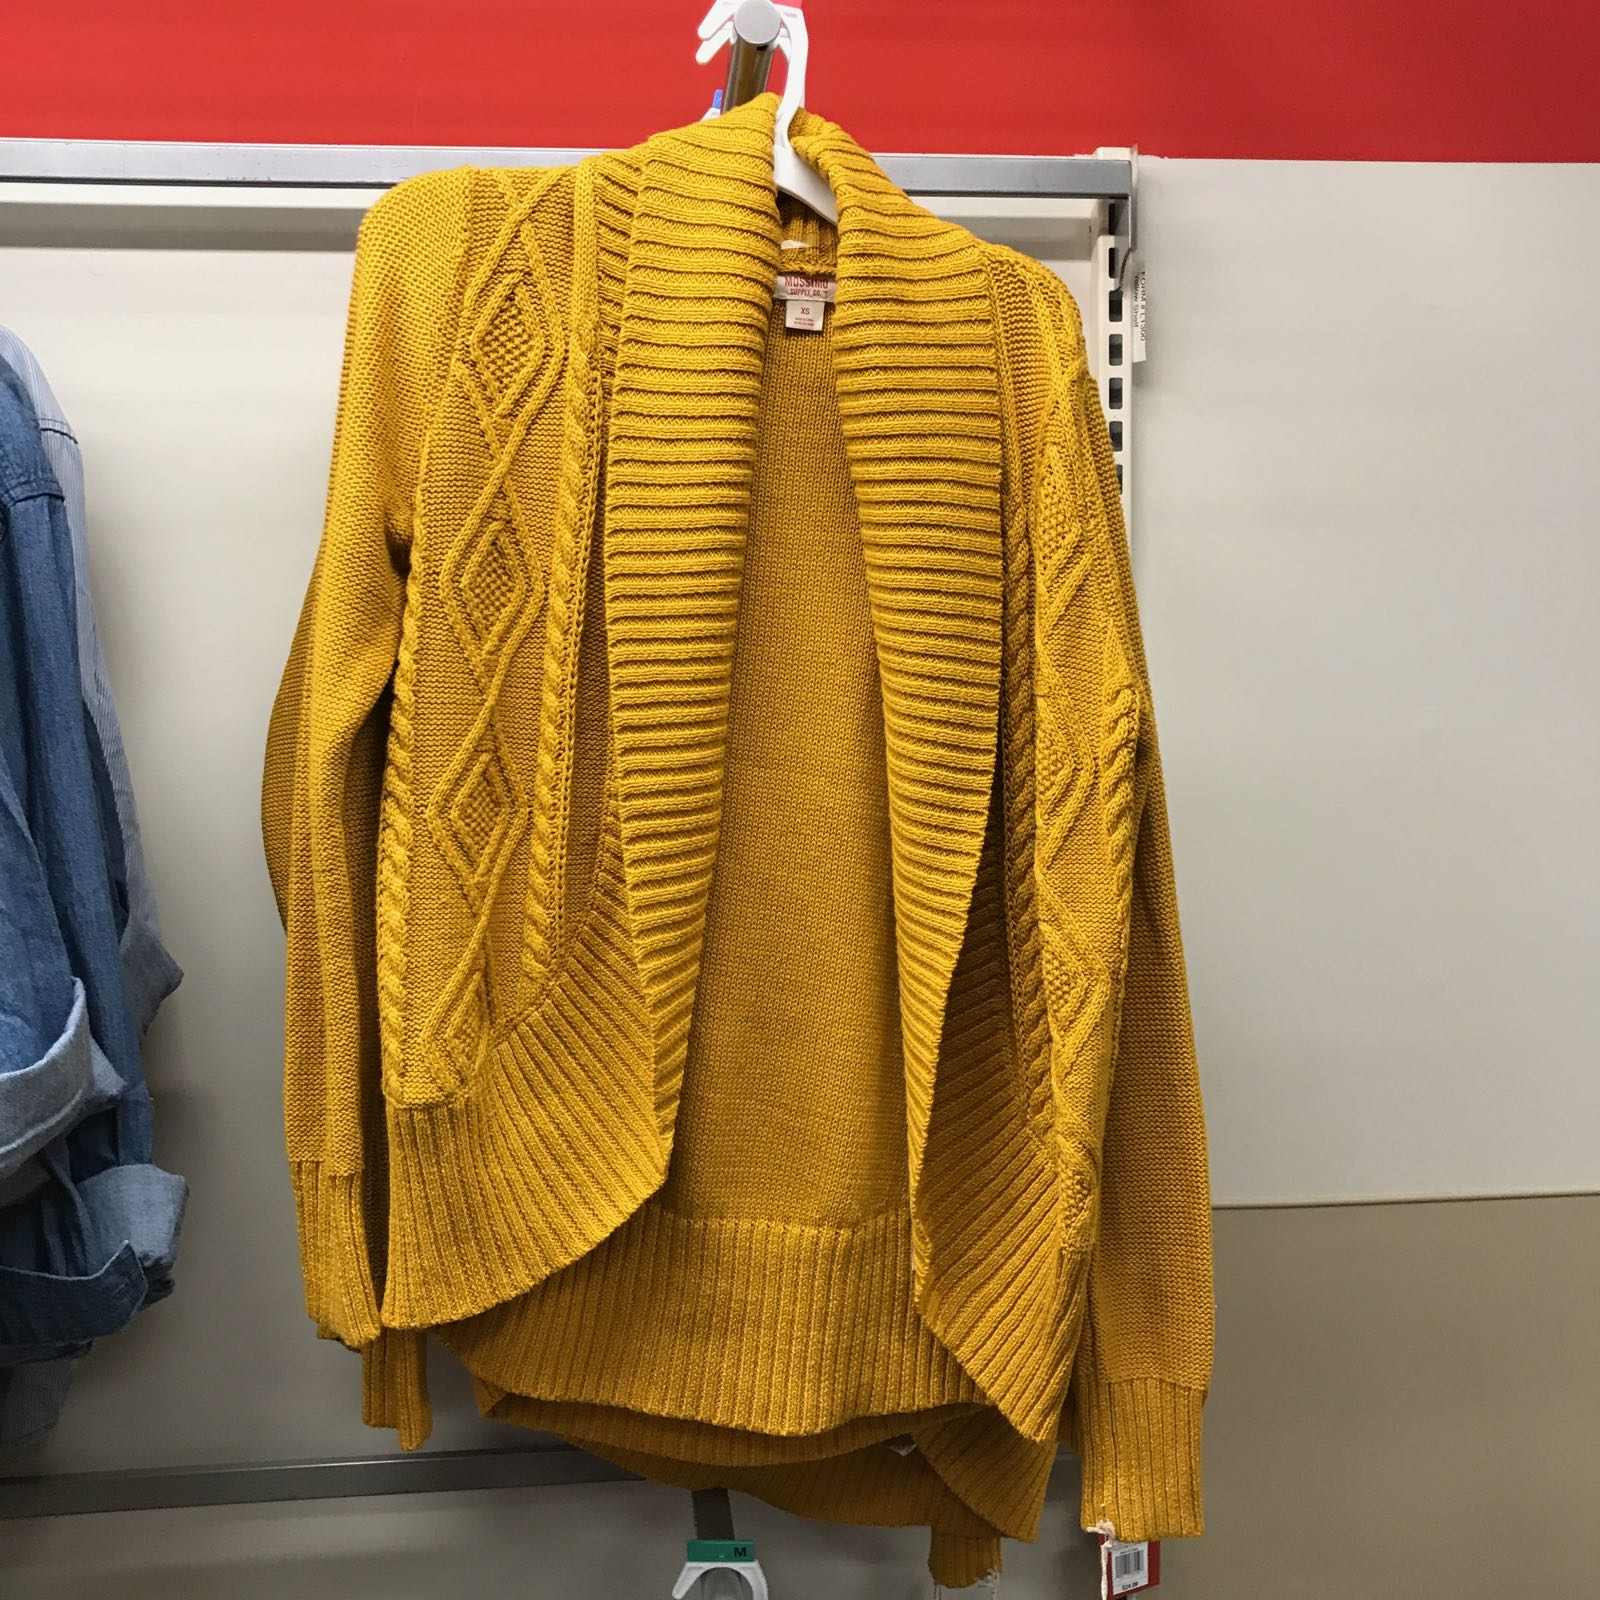 Such cute stuff for fall at Target